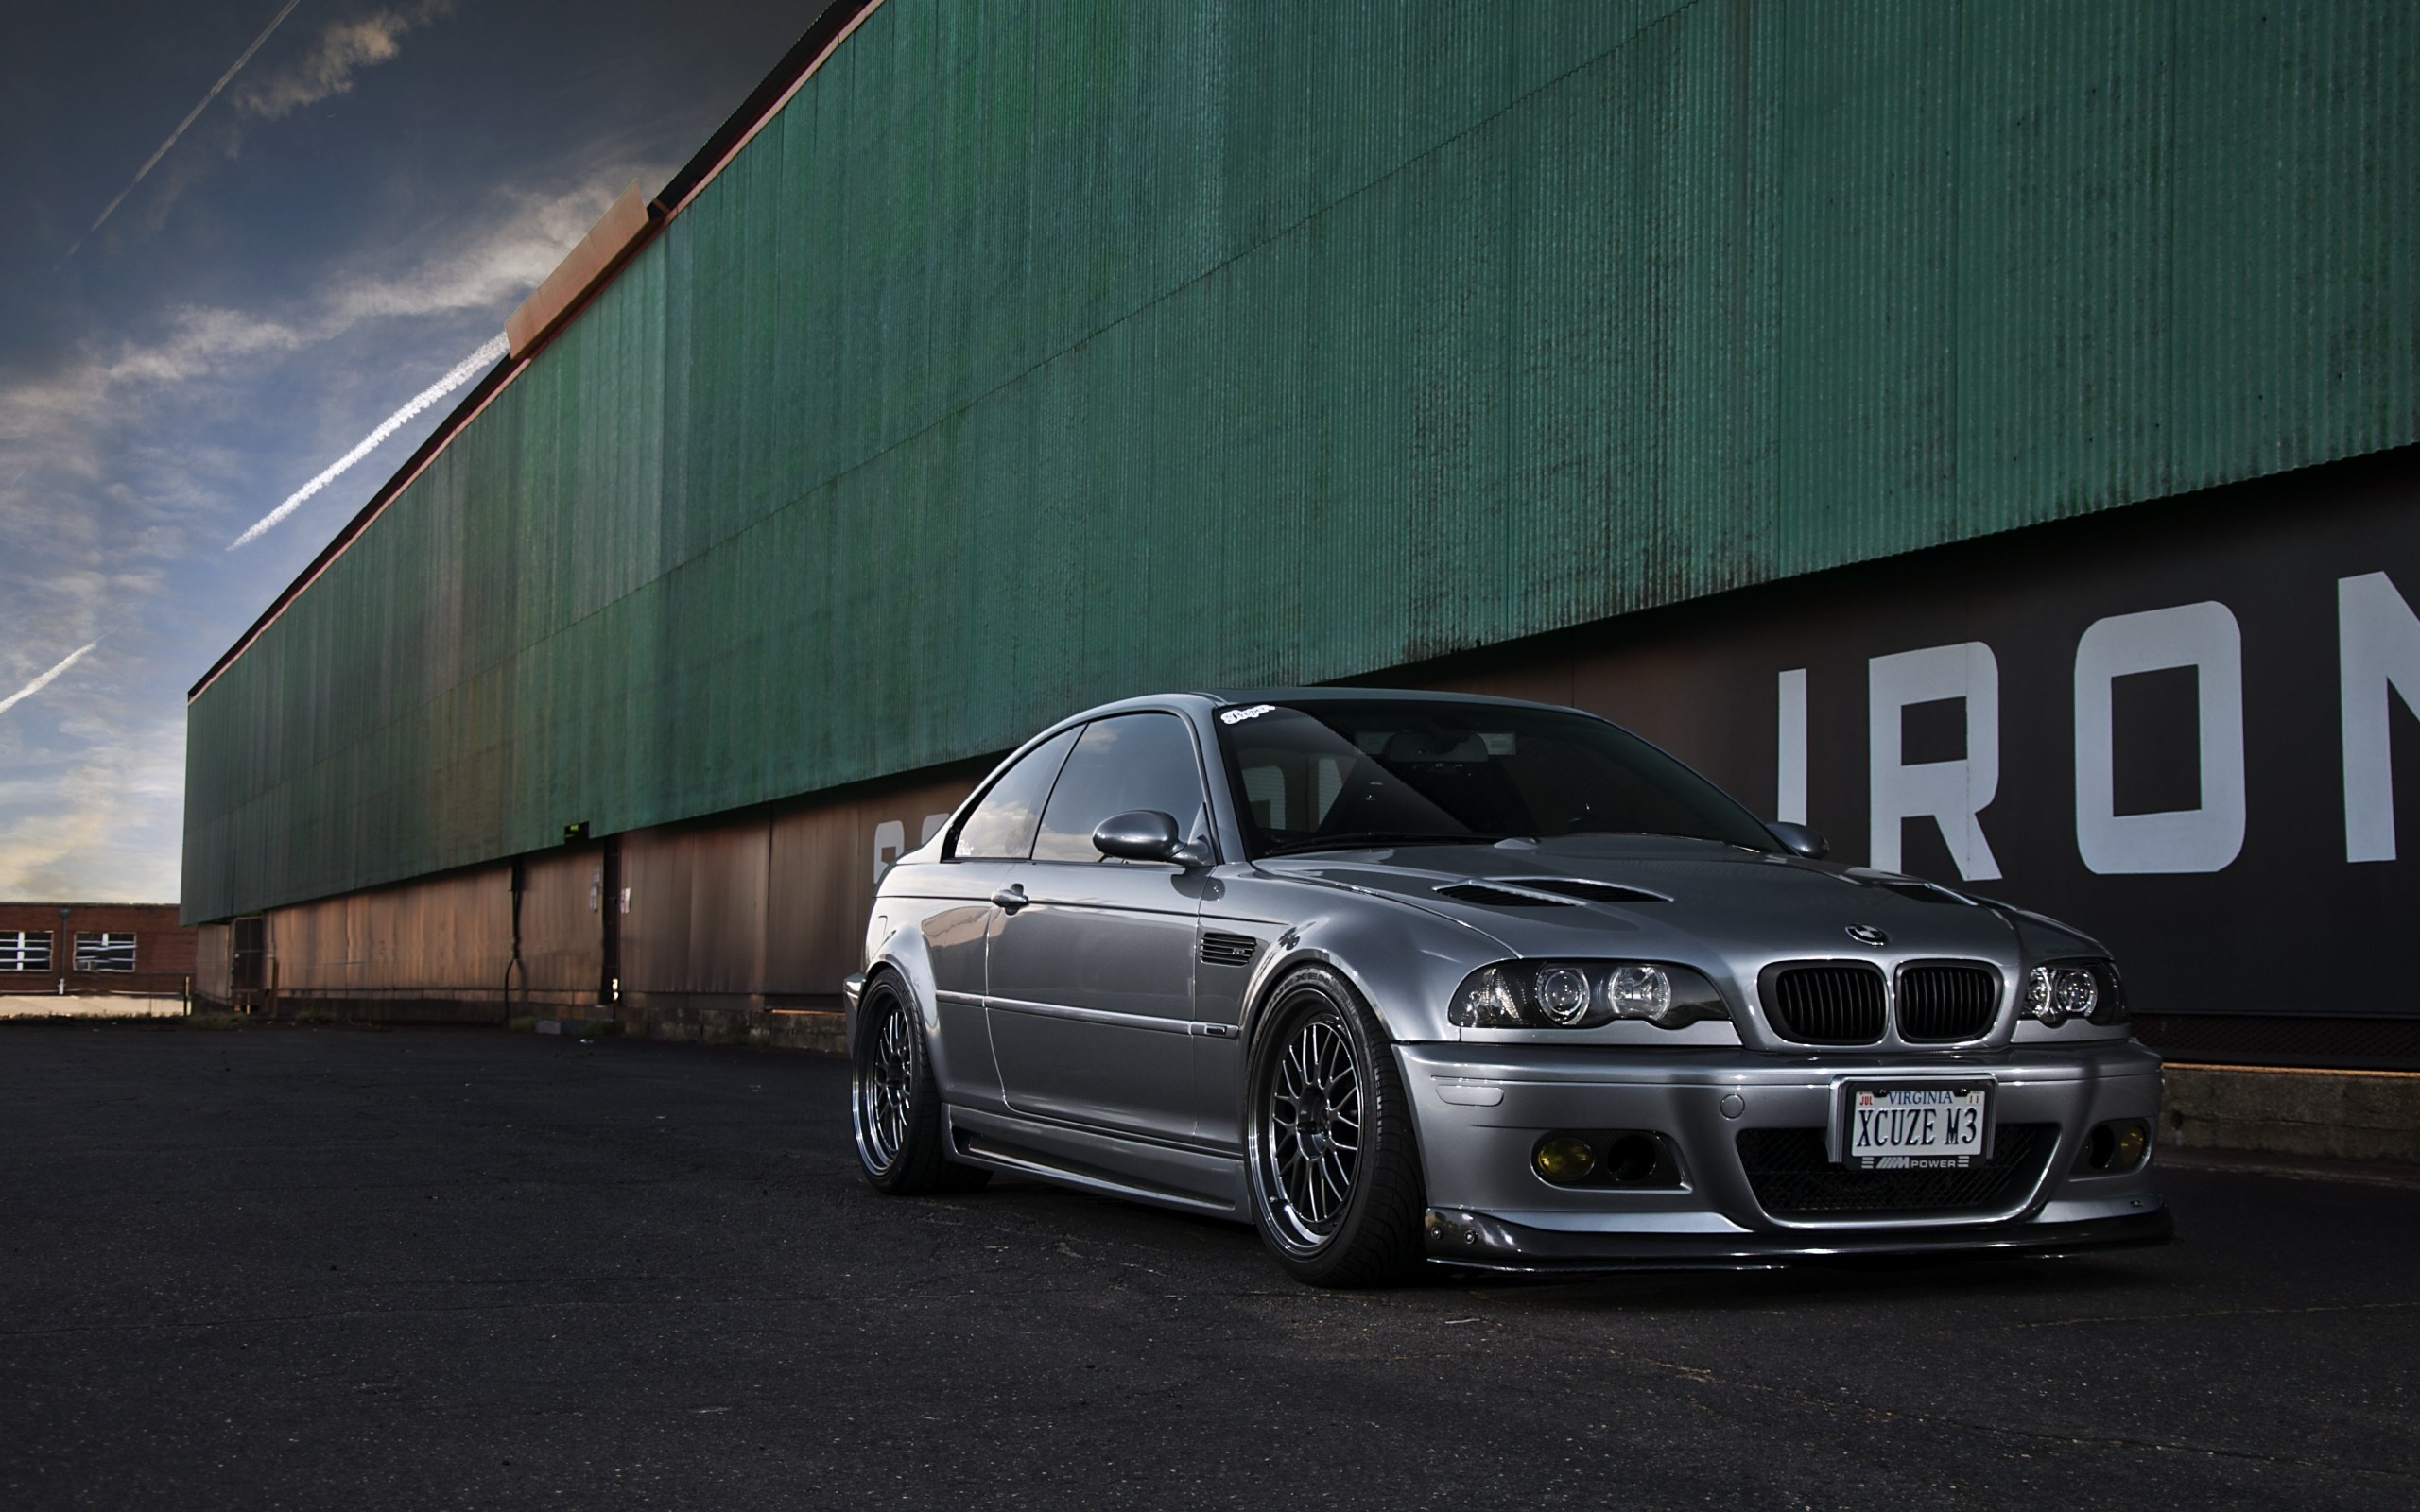 cool bmw m3 coupe wallpaper hd car images hd BMW M3 Bmw J D Wallpaper Auto  Car Wallpapers Picture HD | BMW Cars Gallery | Pinterest | Bmw m3 coupe, …